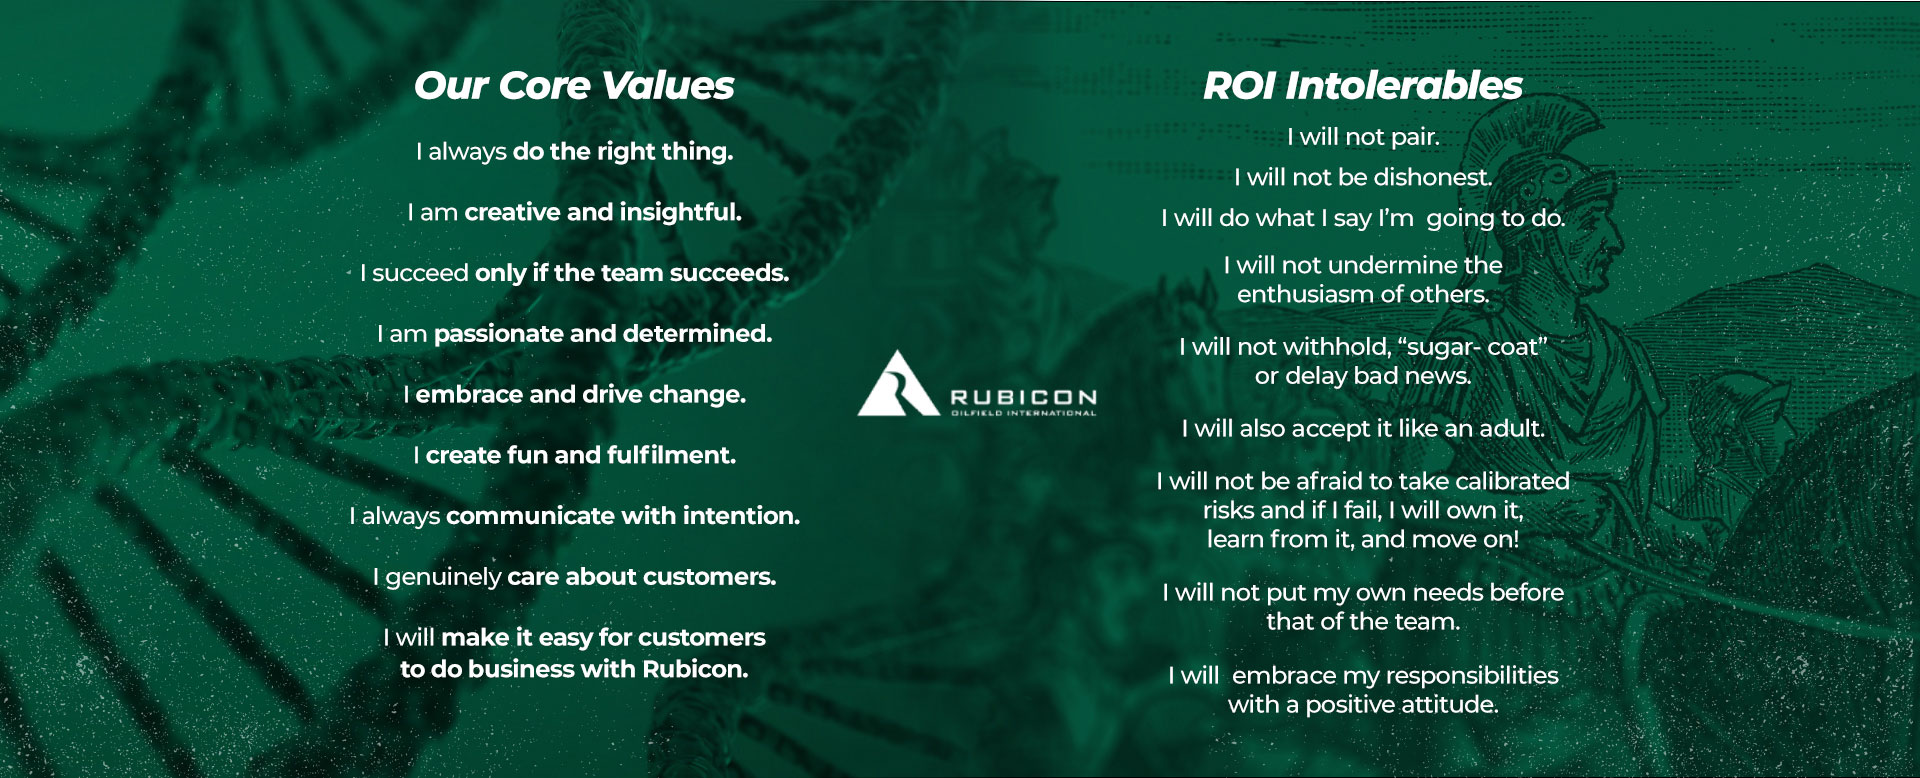 Rubicon Core Values and Intolerables